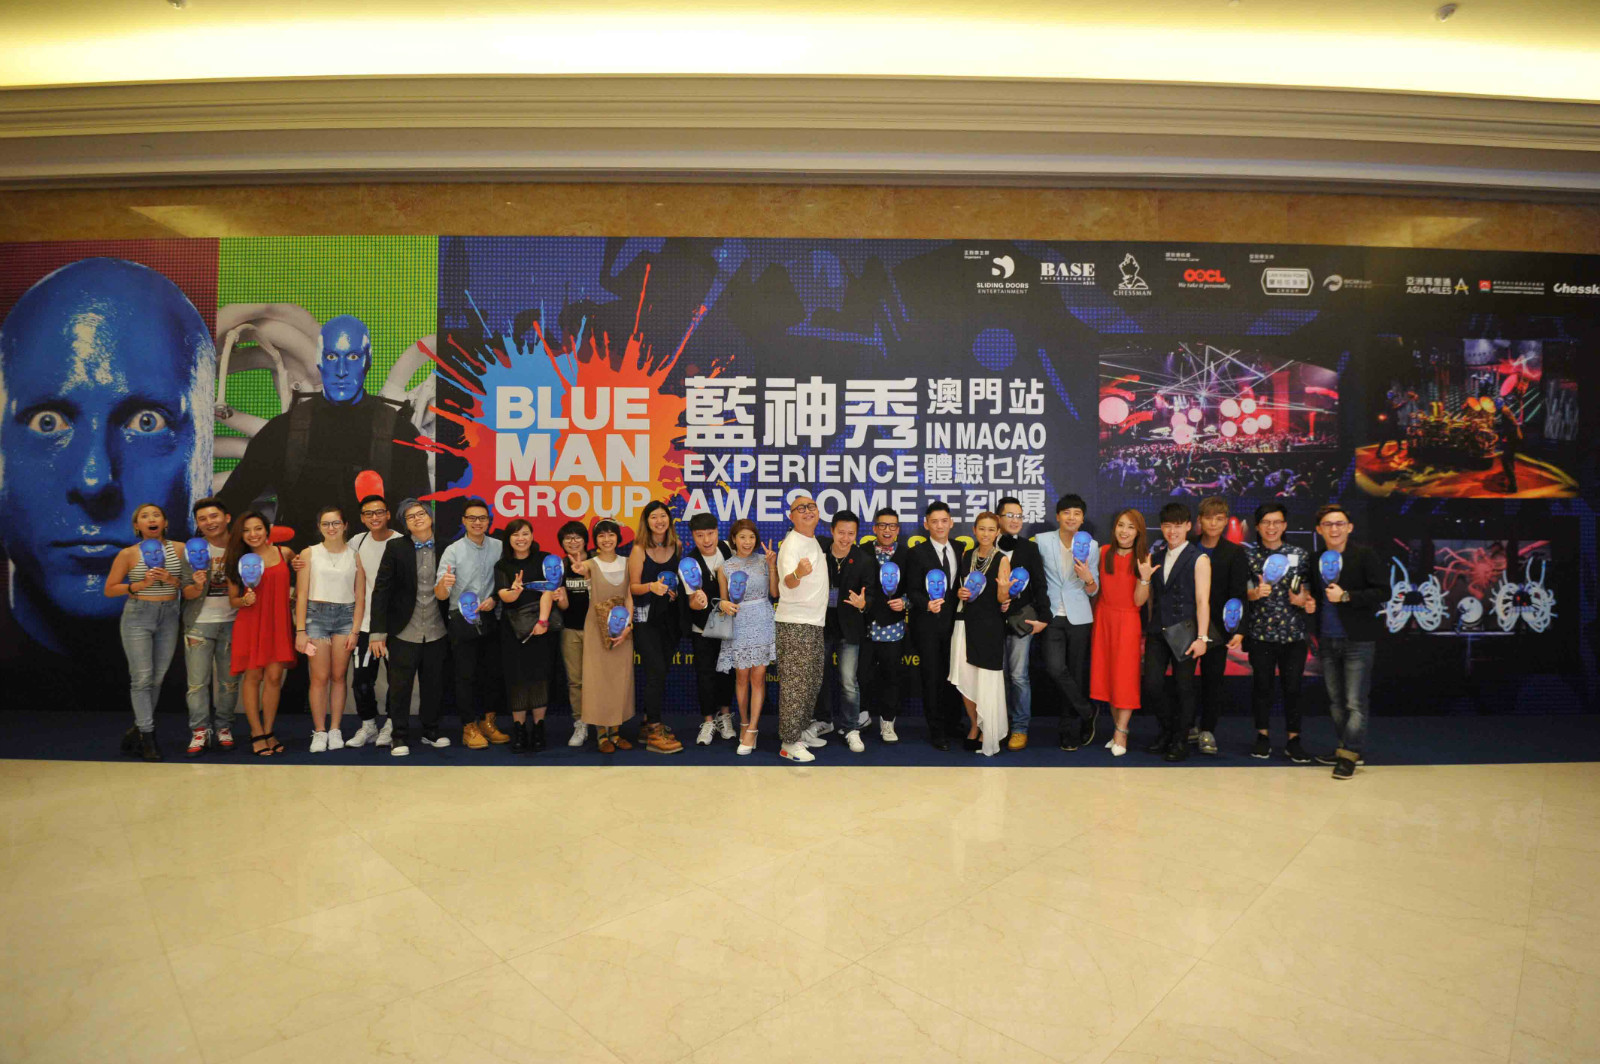 Blue Man Group in Macao